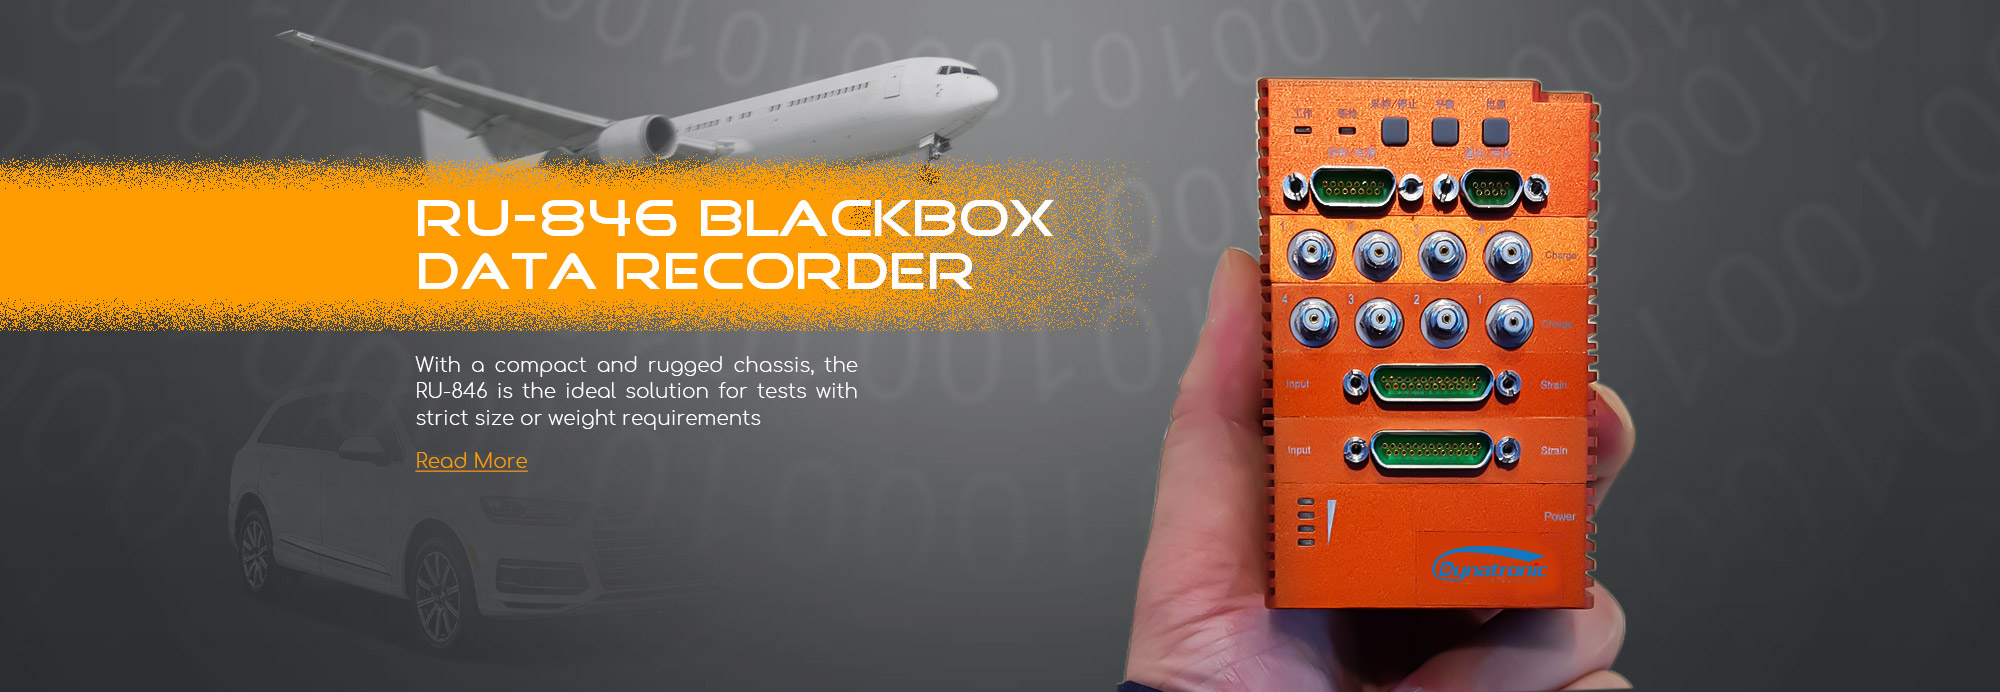 black box data recorder RU-846